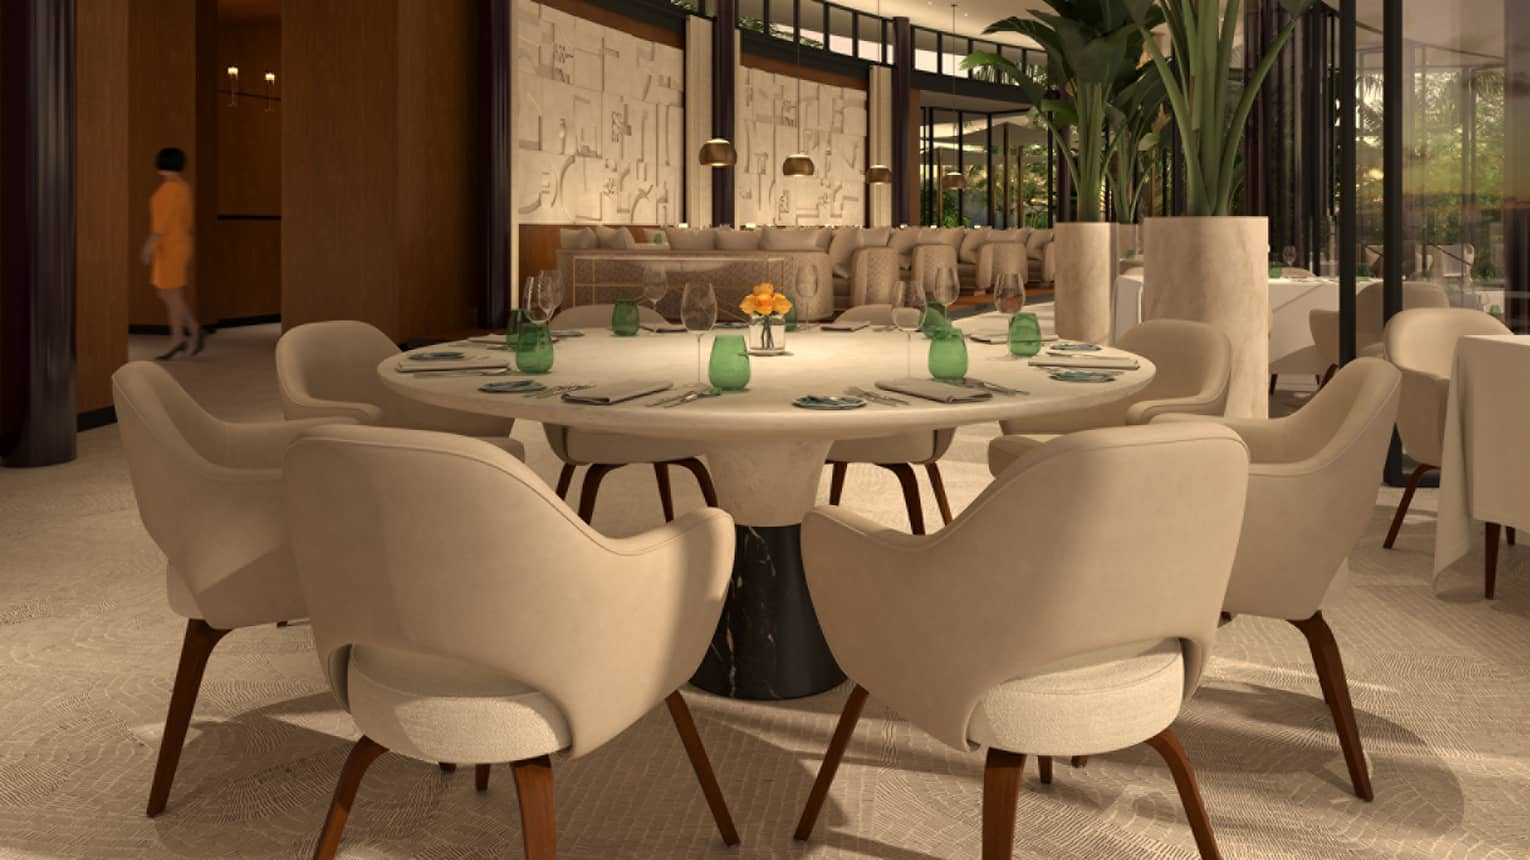 Mid-century style white dining chairs line round table under curved modern gold sculpture